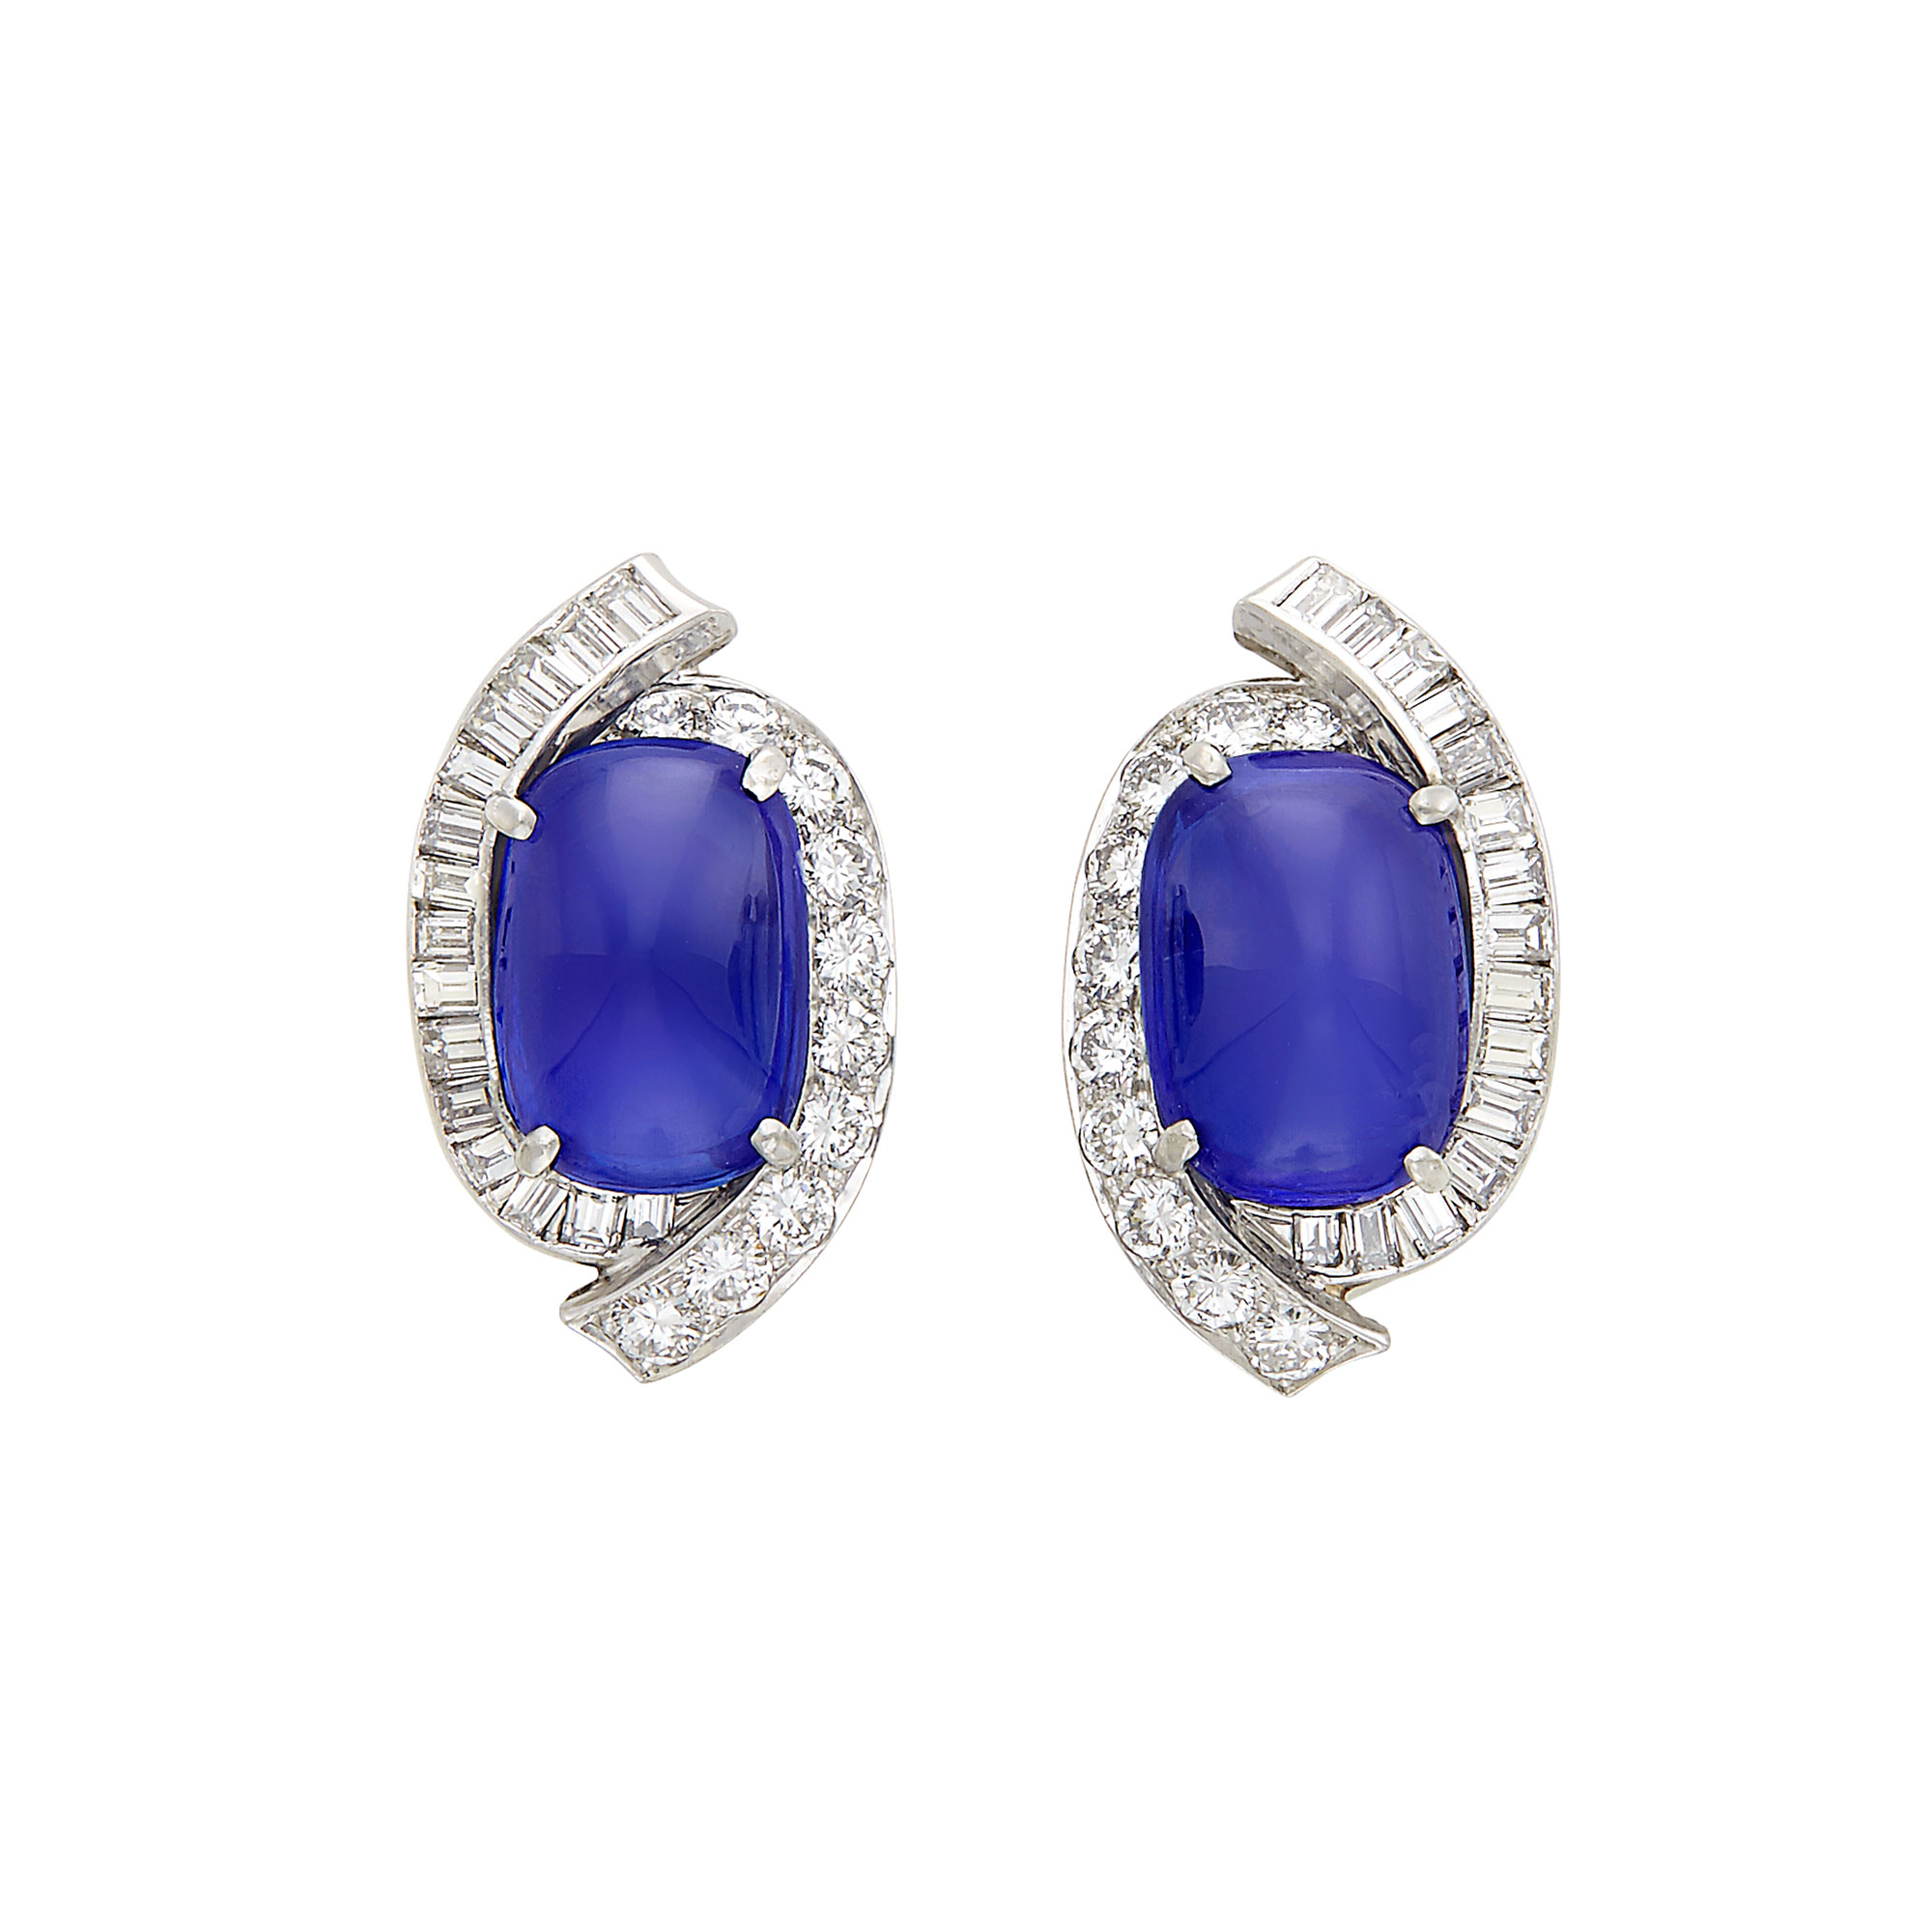 Lot image - Pair of Platinum, Cabochon Kashmir Sapphire and Diamond Earclips